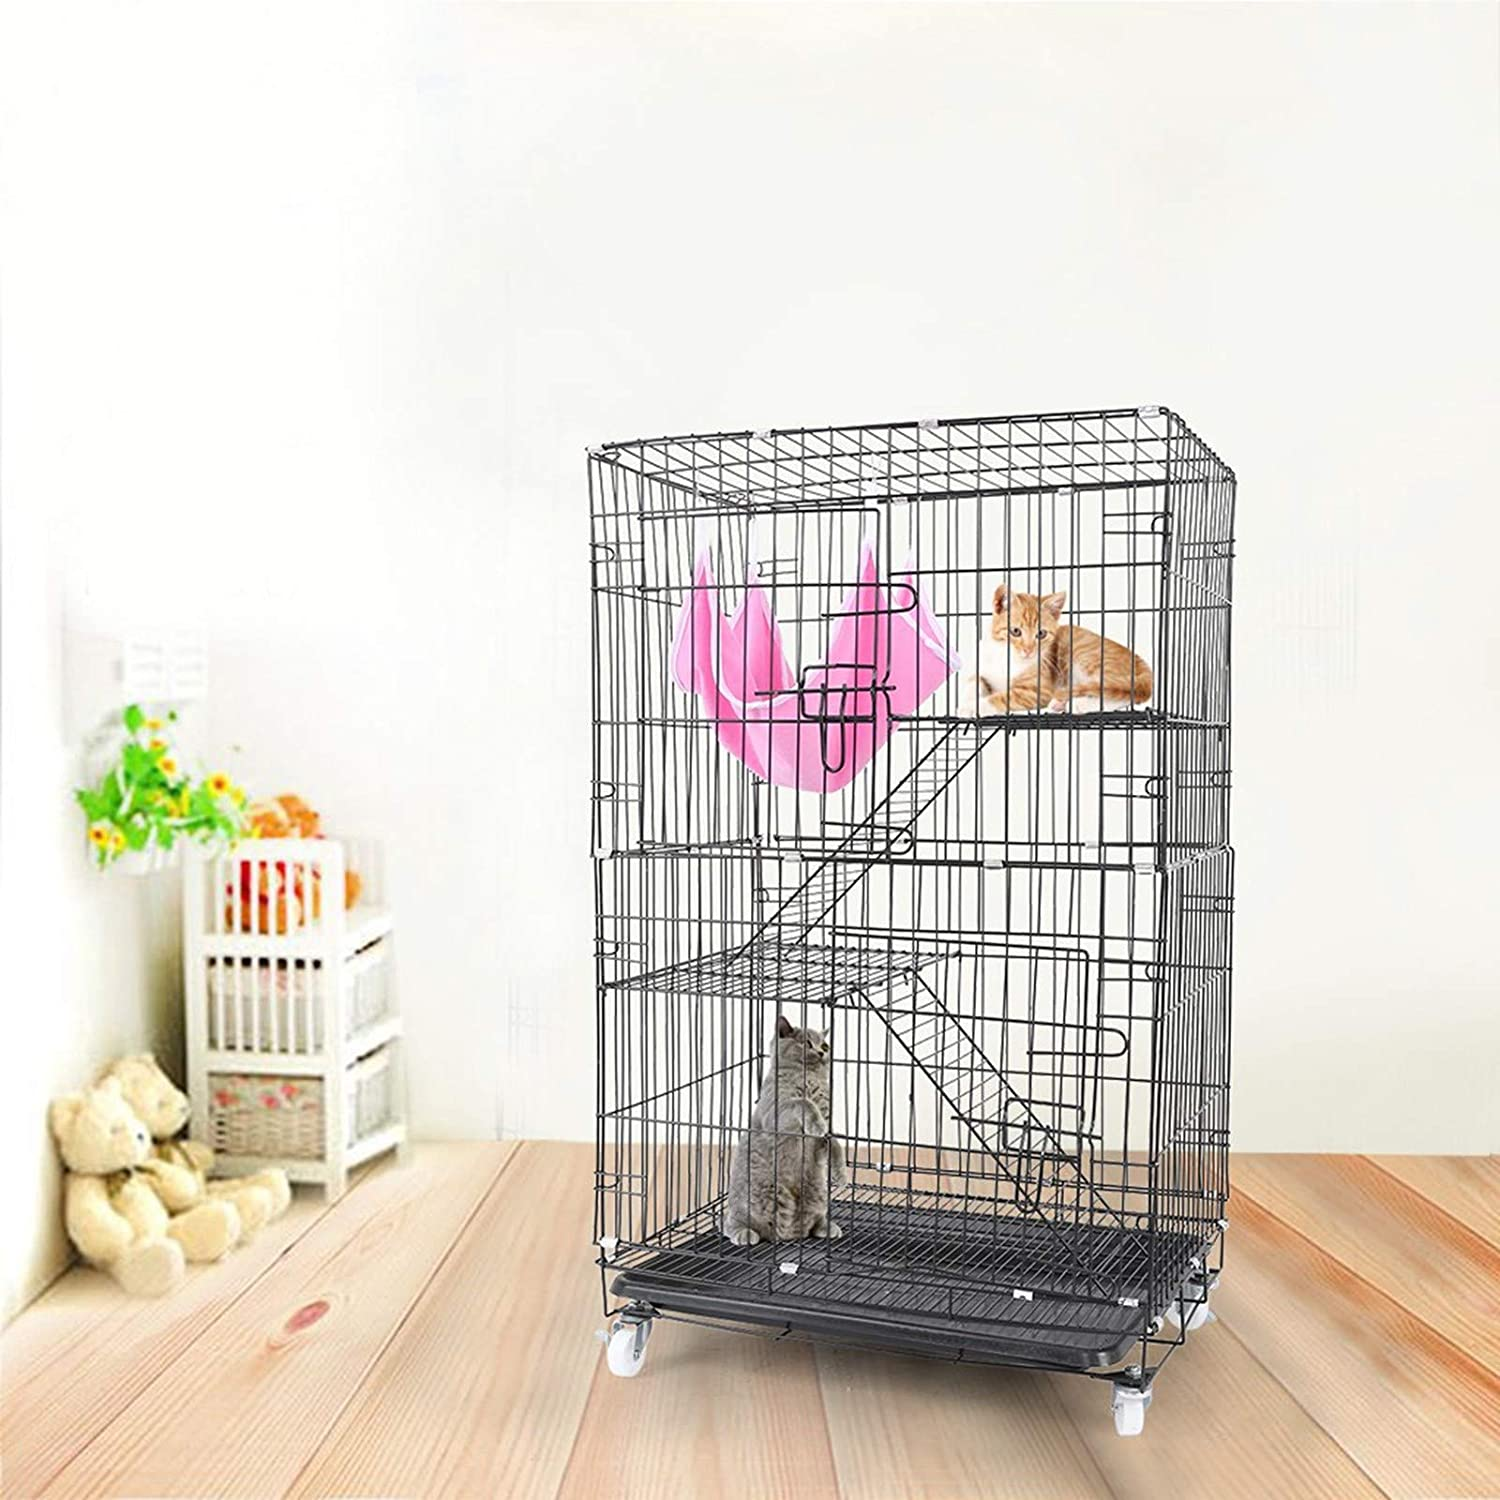 Cat Cage, Luxury 3-Tier Kitten Ferret Rat Portable Cat Home on Wheels Fold 360° Rotating Casters Enclosure Pet Playpen with Ramp Ladders Hammock and Platforms Bed Easy to Clean